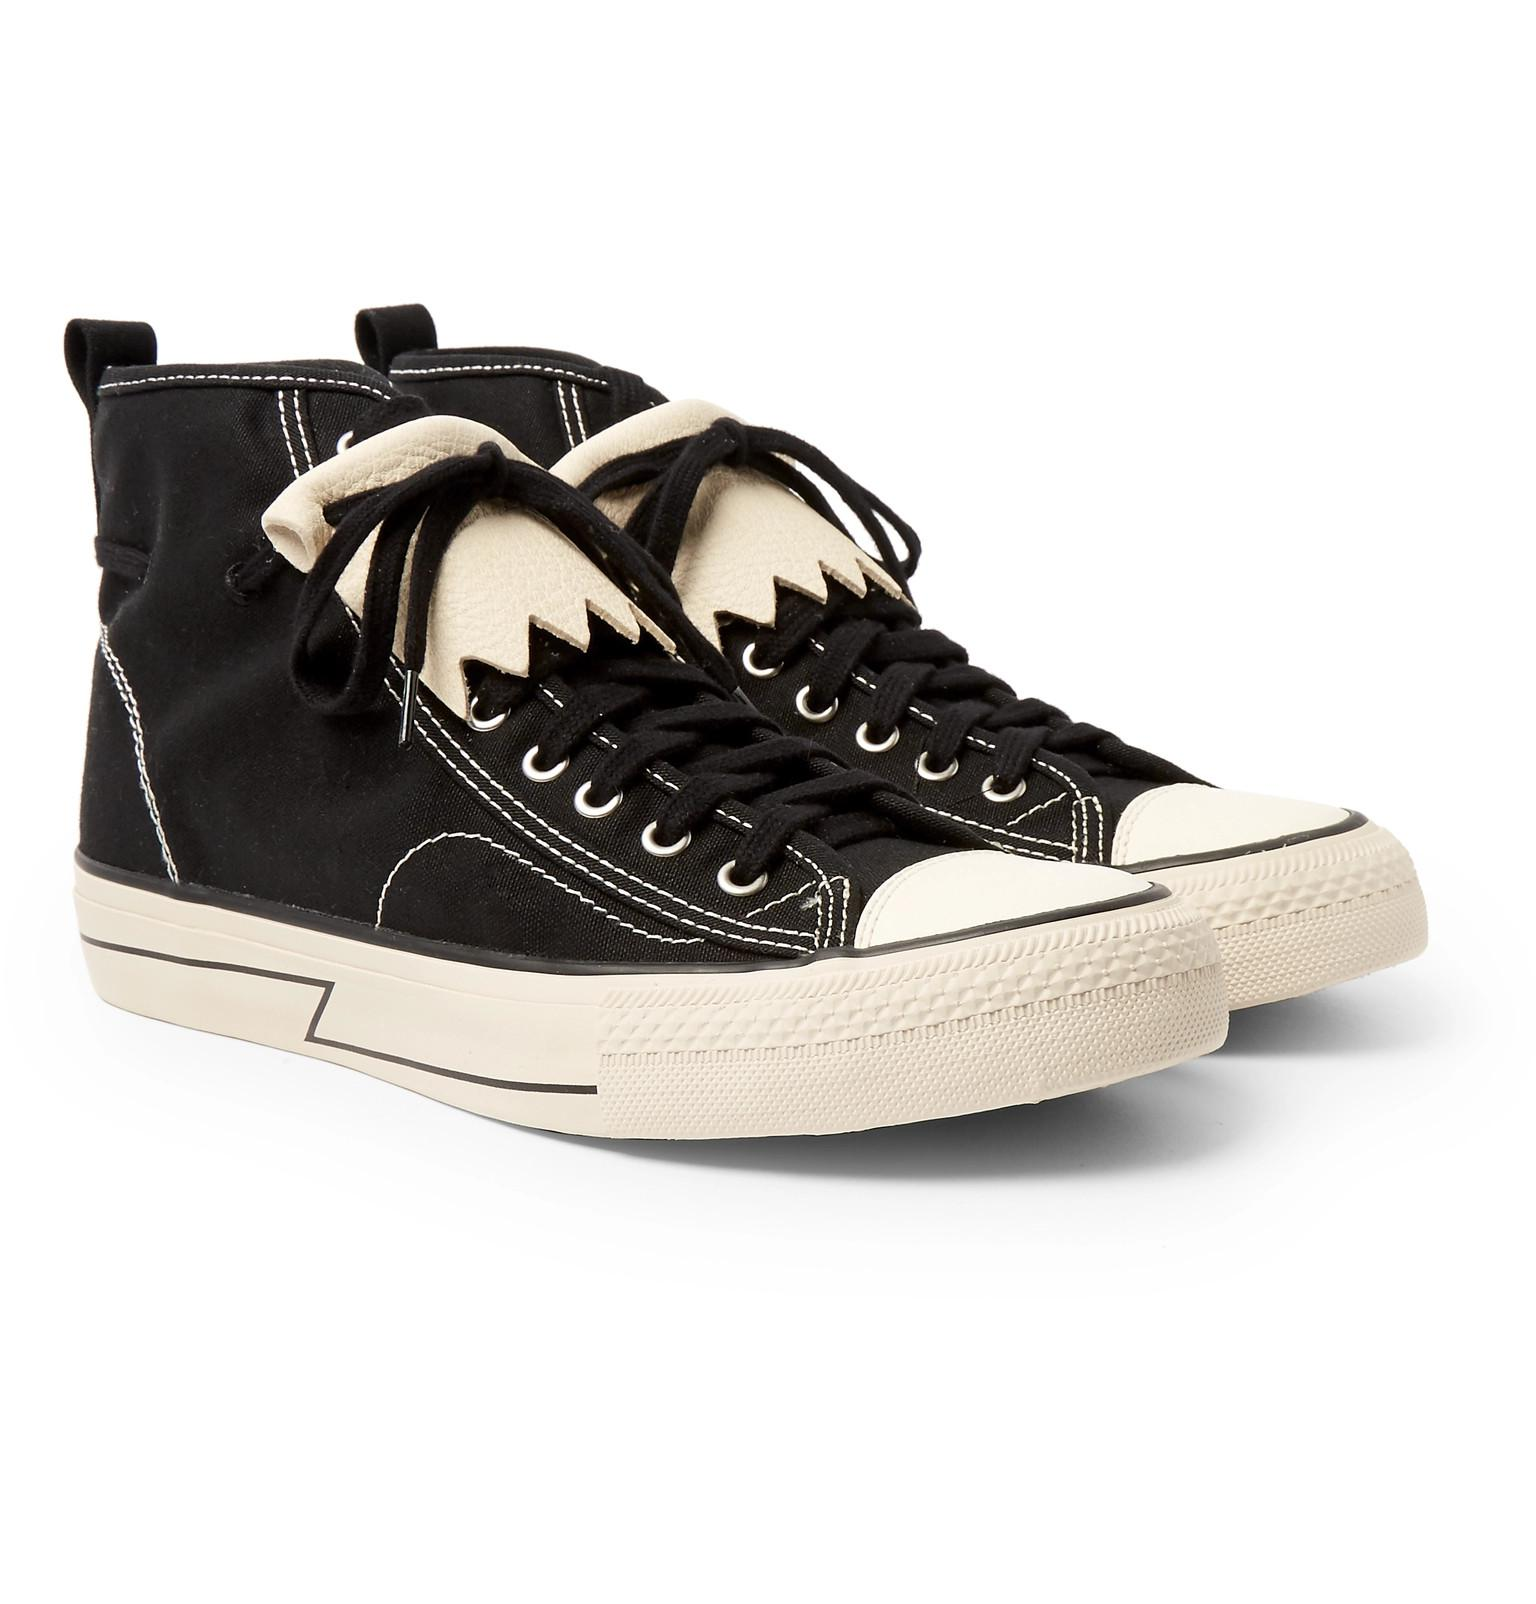 outlet marketable clearance cheap online visvim Skagway Fringed Leather-Trimmed Canvas High-Top Sneakers FFM2hPXvUb